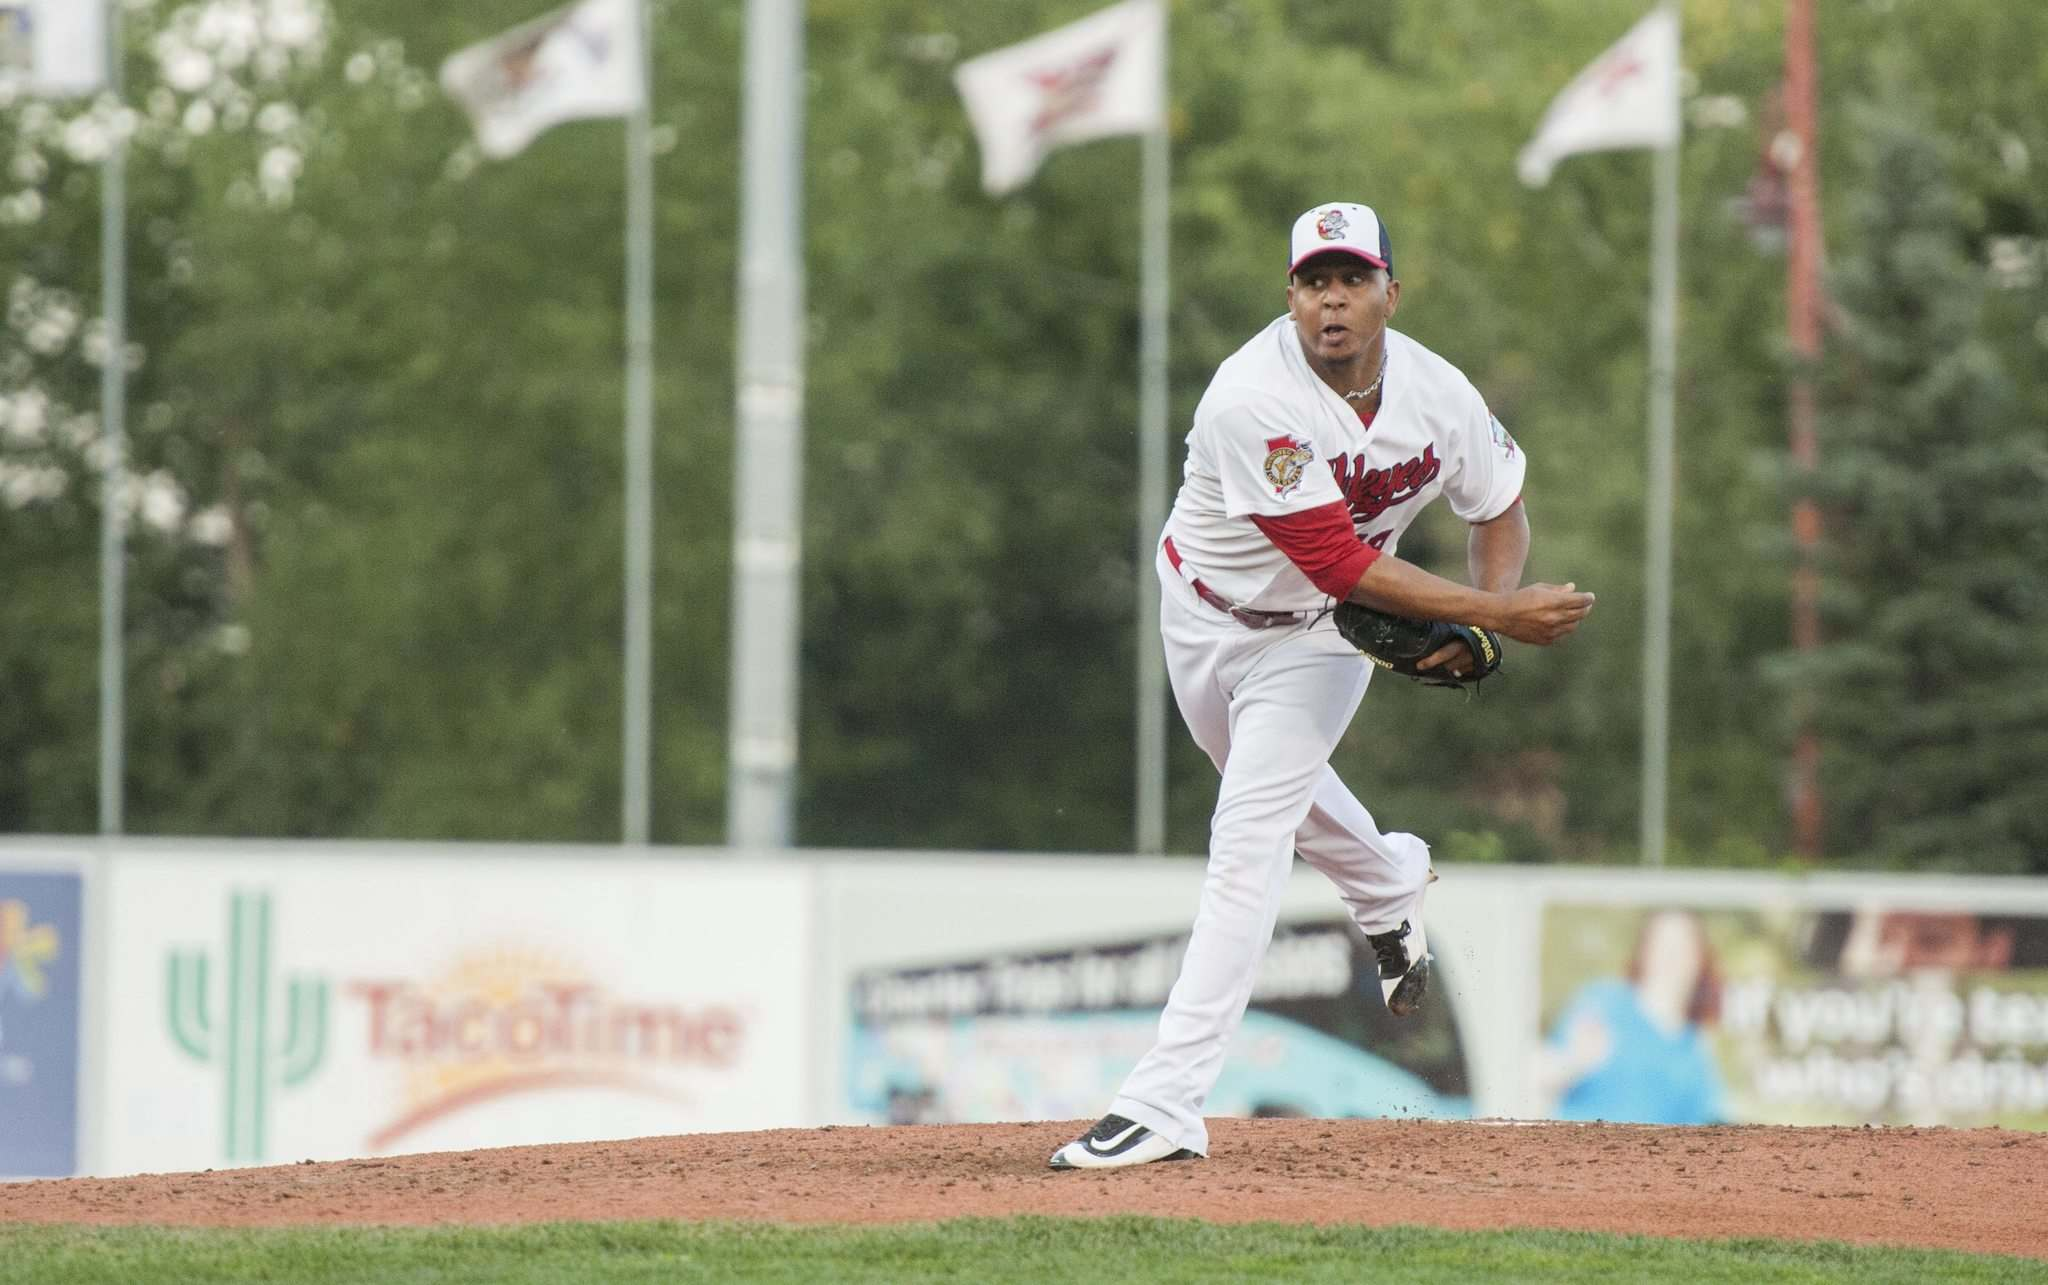 MIKE SUDOMA / WINNIPEG FREE PRESS </p><p>Charlie Rosario went seven innings strong which led to the Goldeyes victory over the Lincoln Saltdogs.</p>